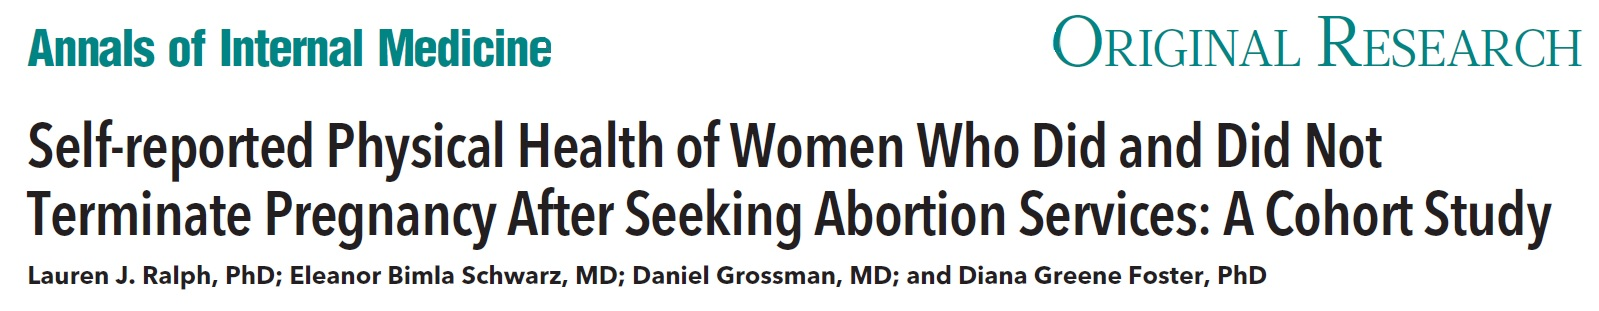 Self-reported Physical Health of Women Who Did and Did Not Terminate Pregnancy After Seeking Abortion Services: A Cohort Study